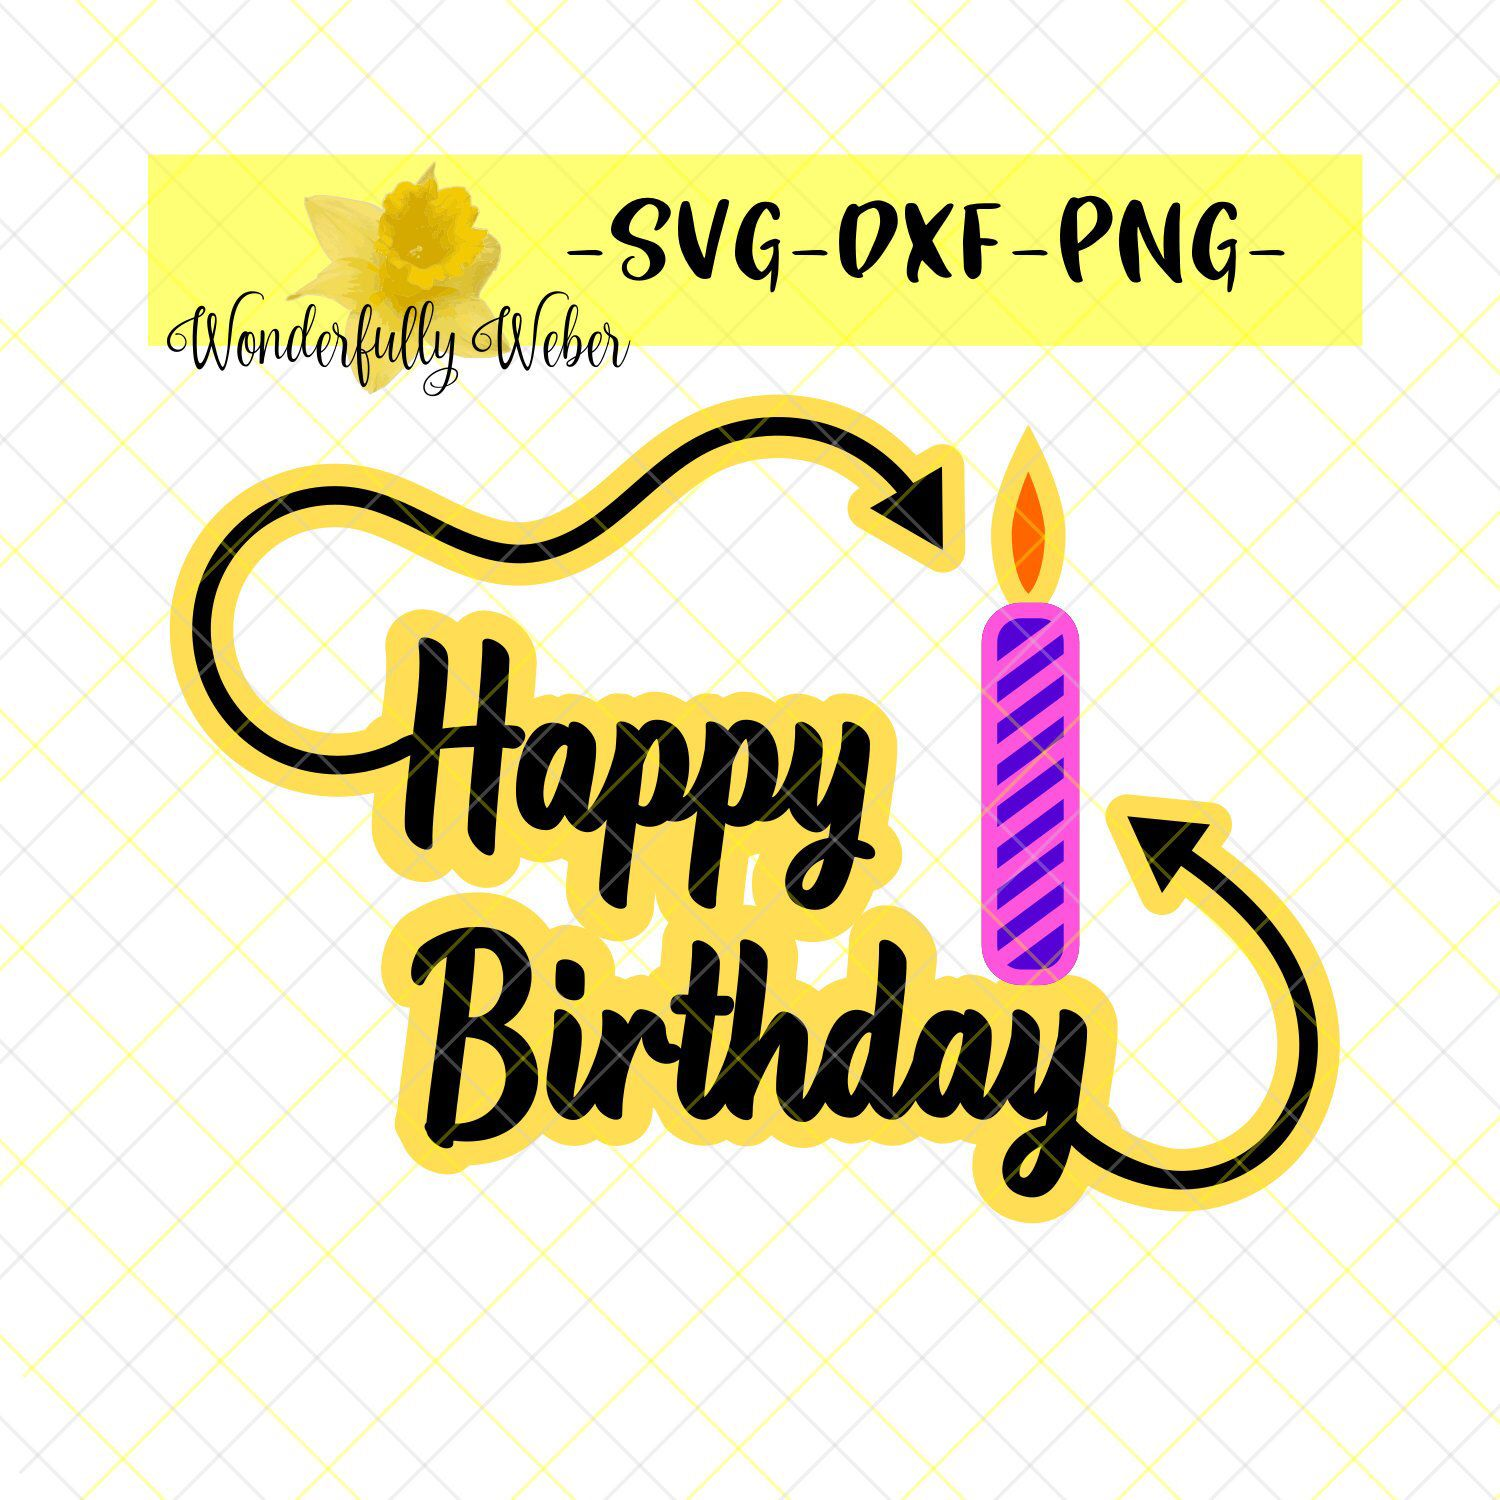 Happy Birthday Layered SVG with Candle and Arrows Cut file